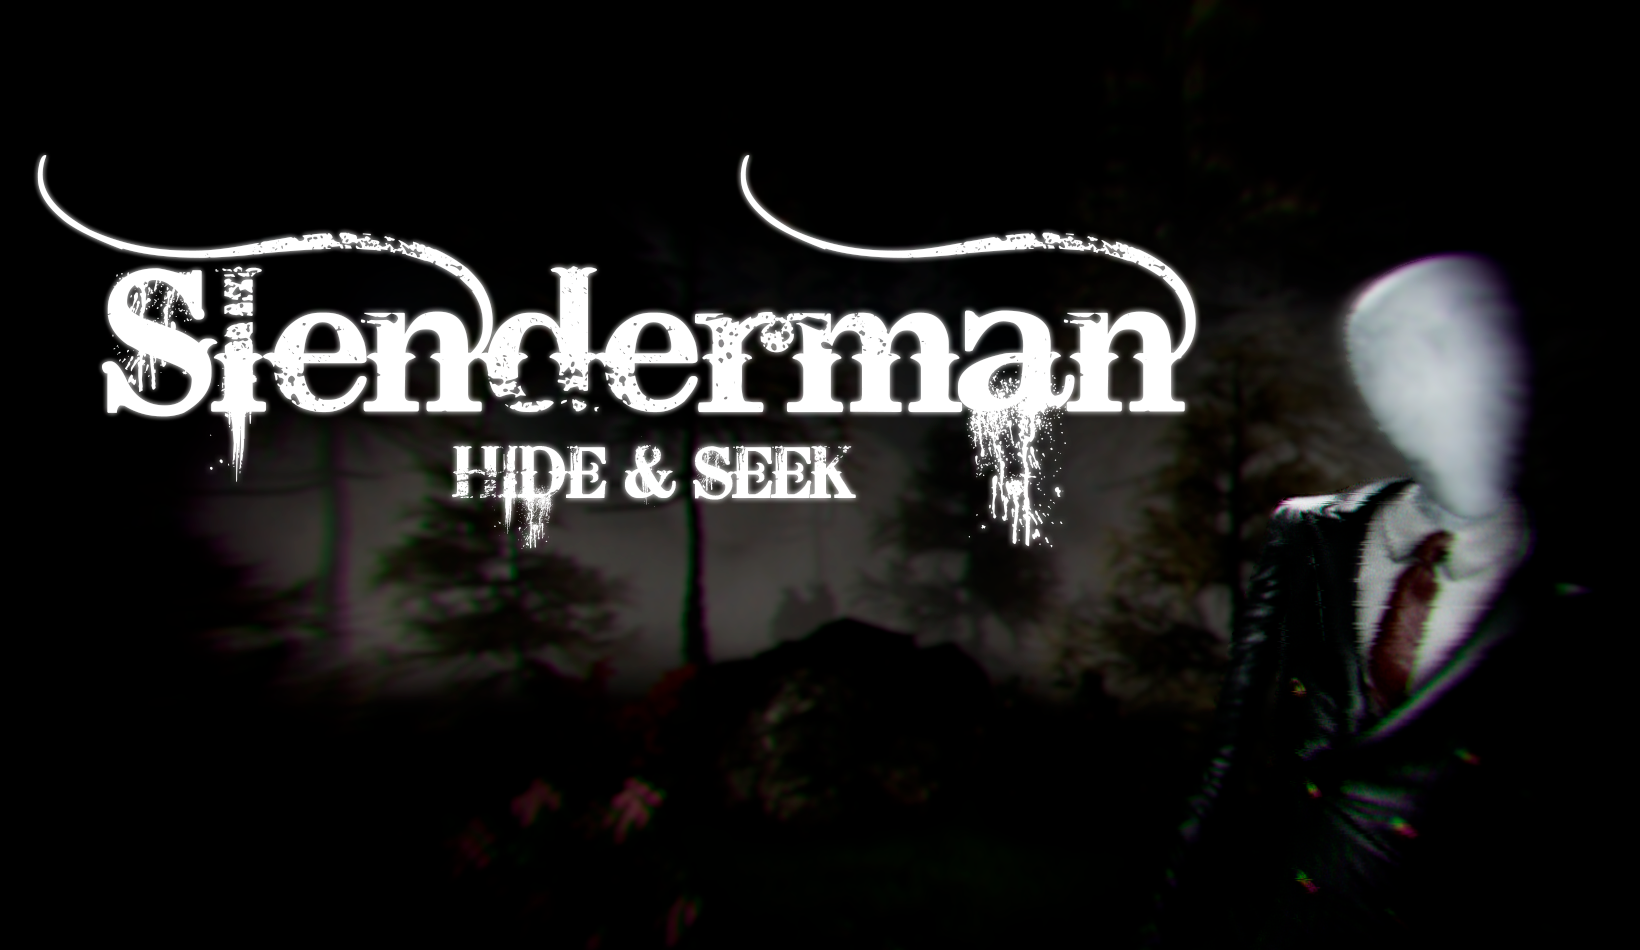 Slenderman: Hide & Seek